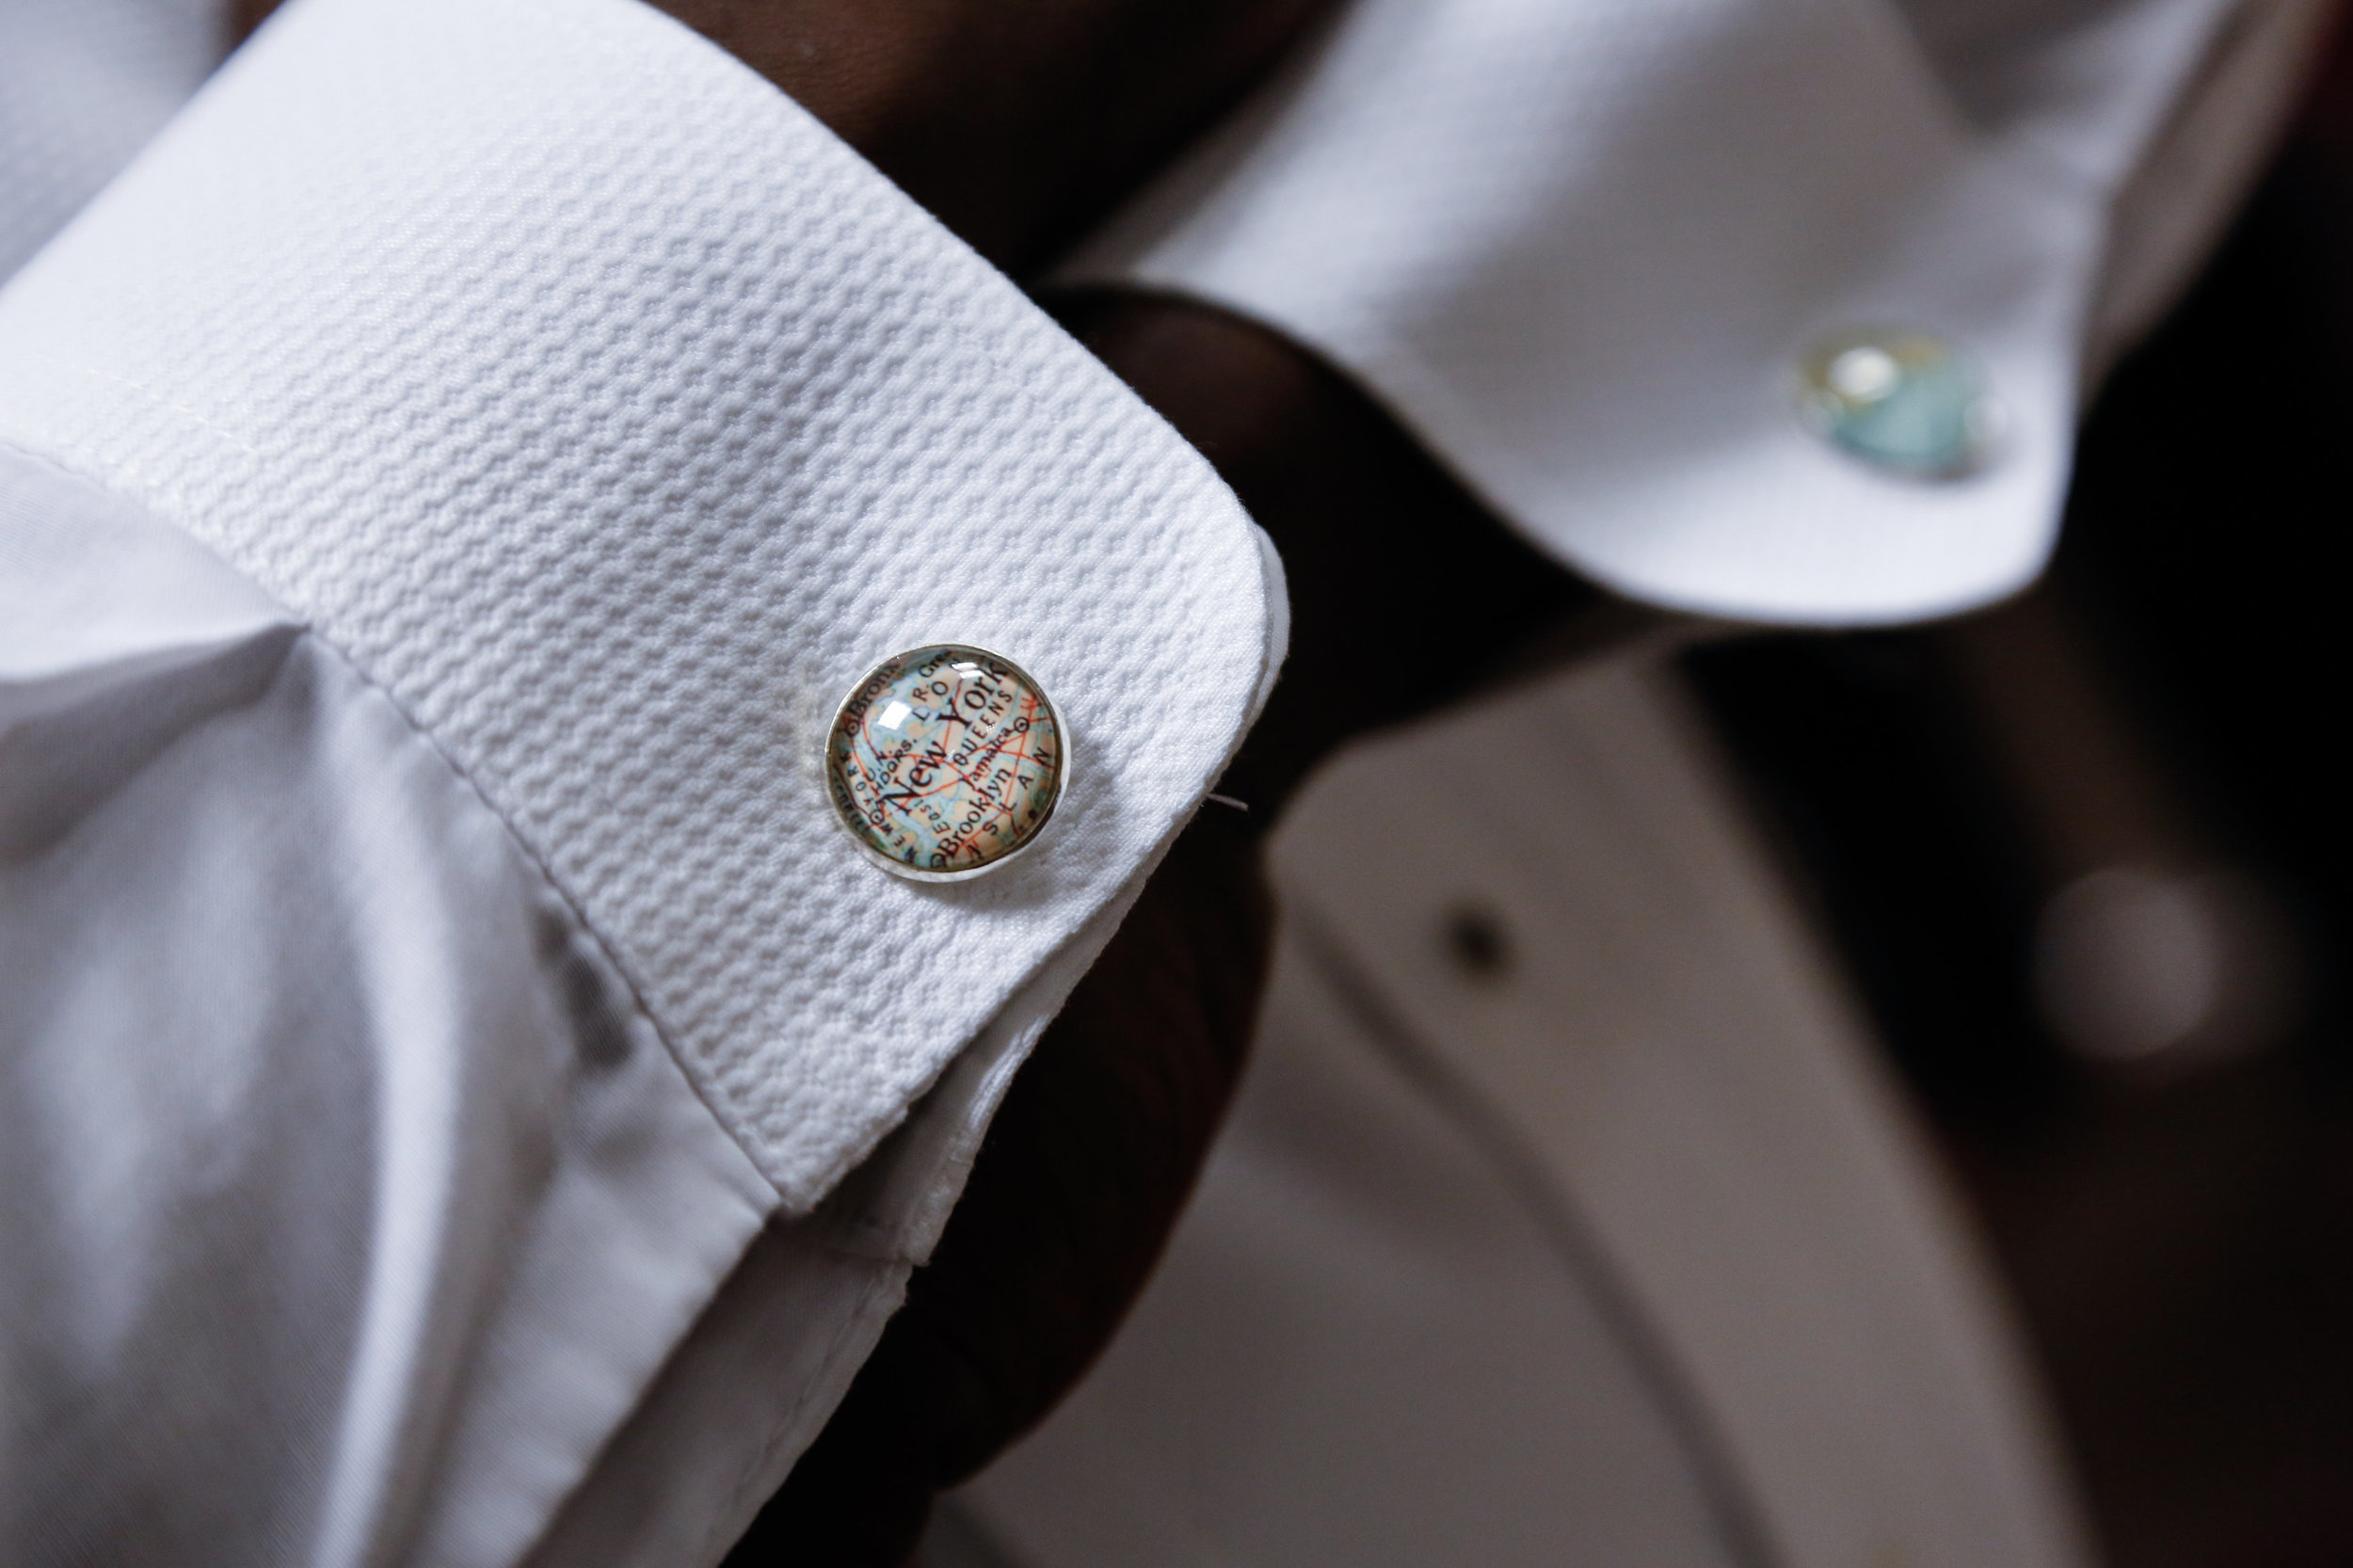 Groomsmen received custom cufflinks with the city they live in and the location their familes descended from. Antoine wore New york and Barbados at the wedding.